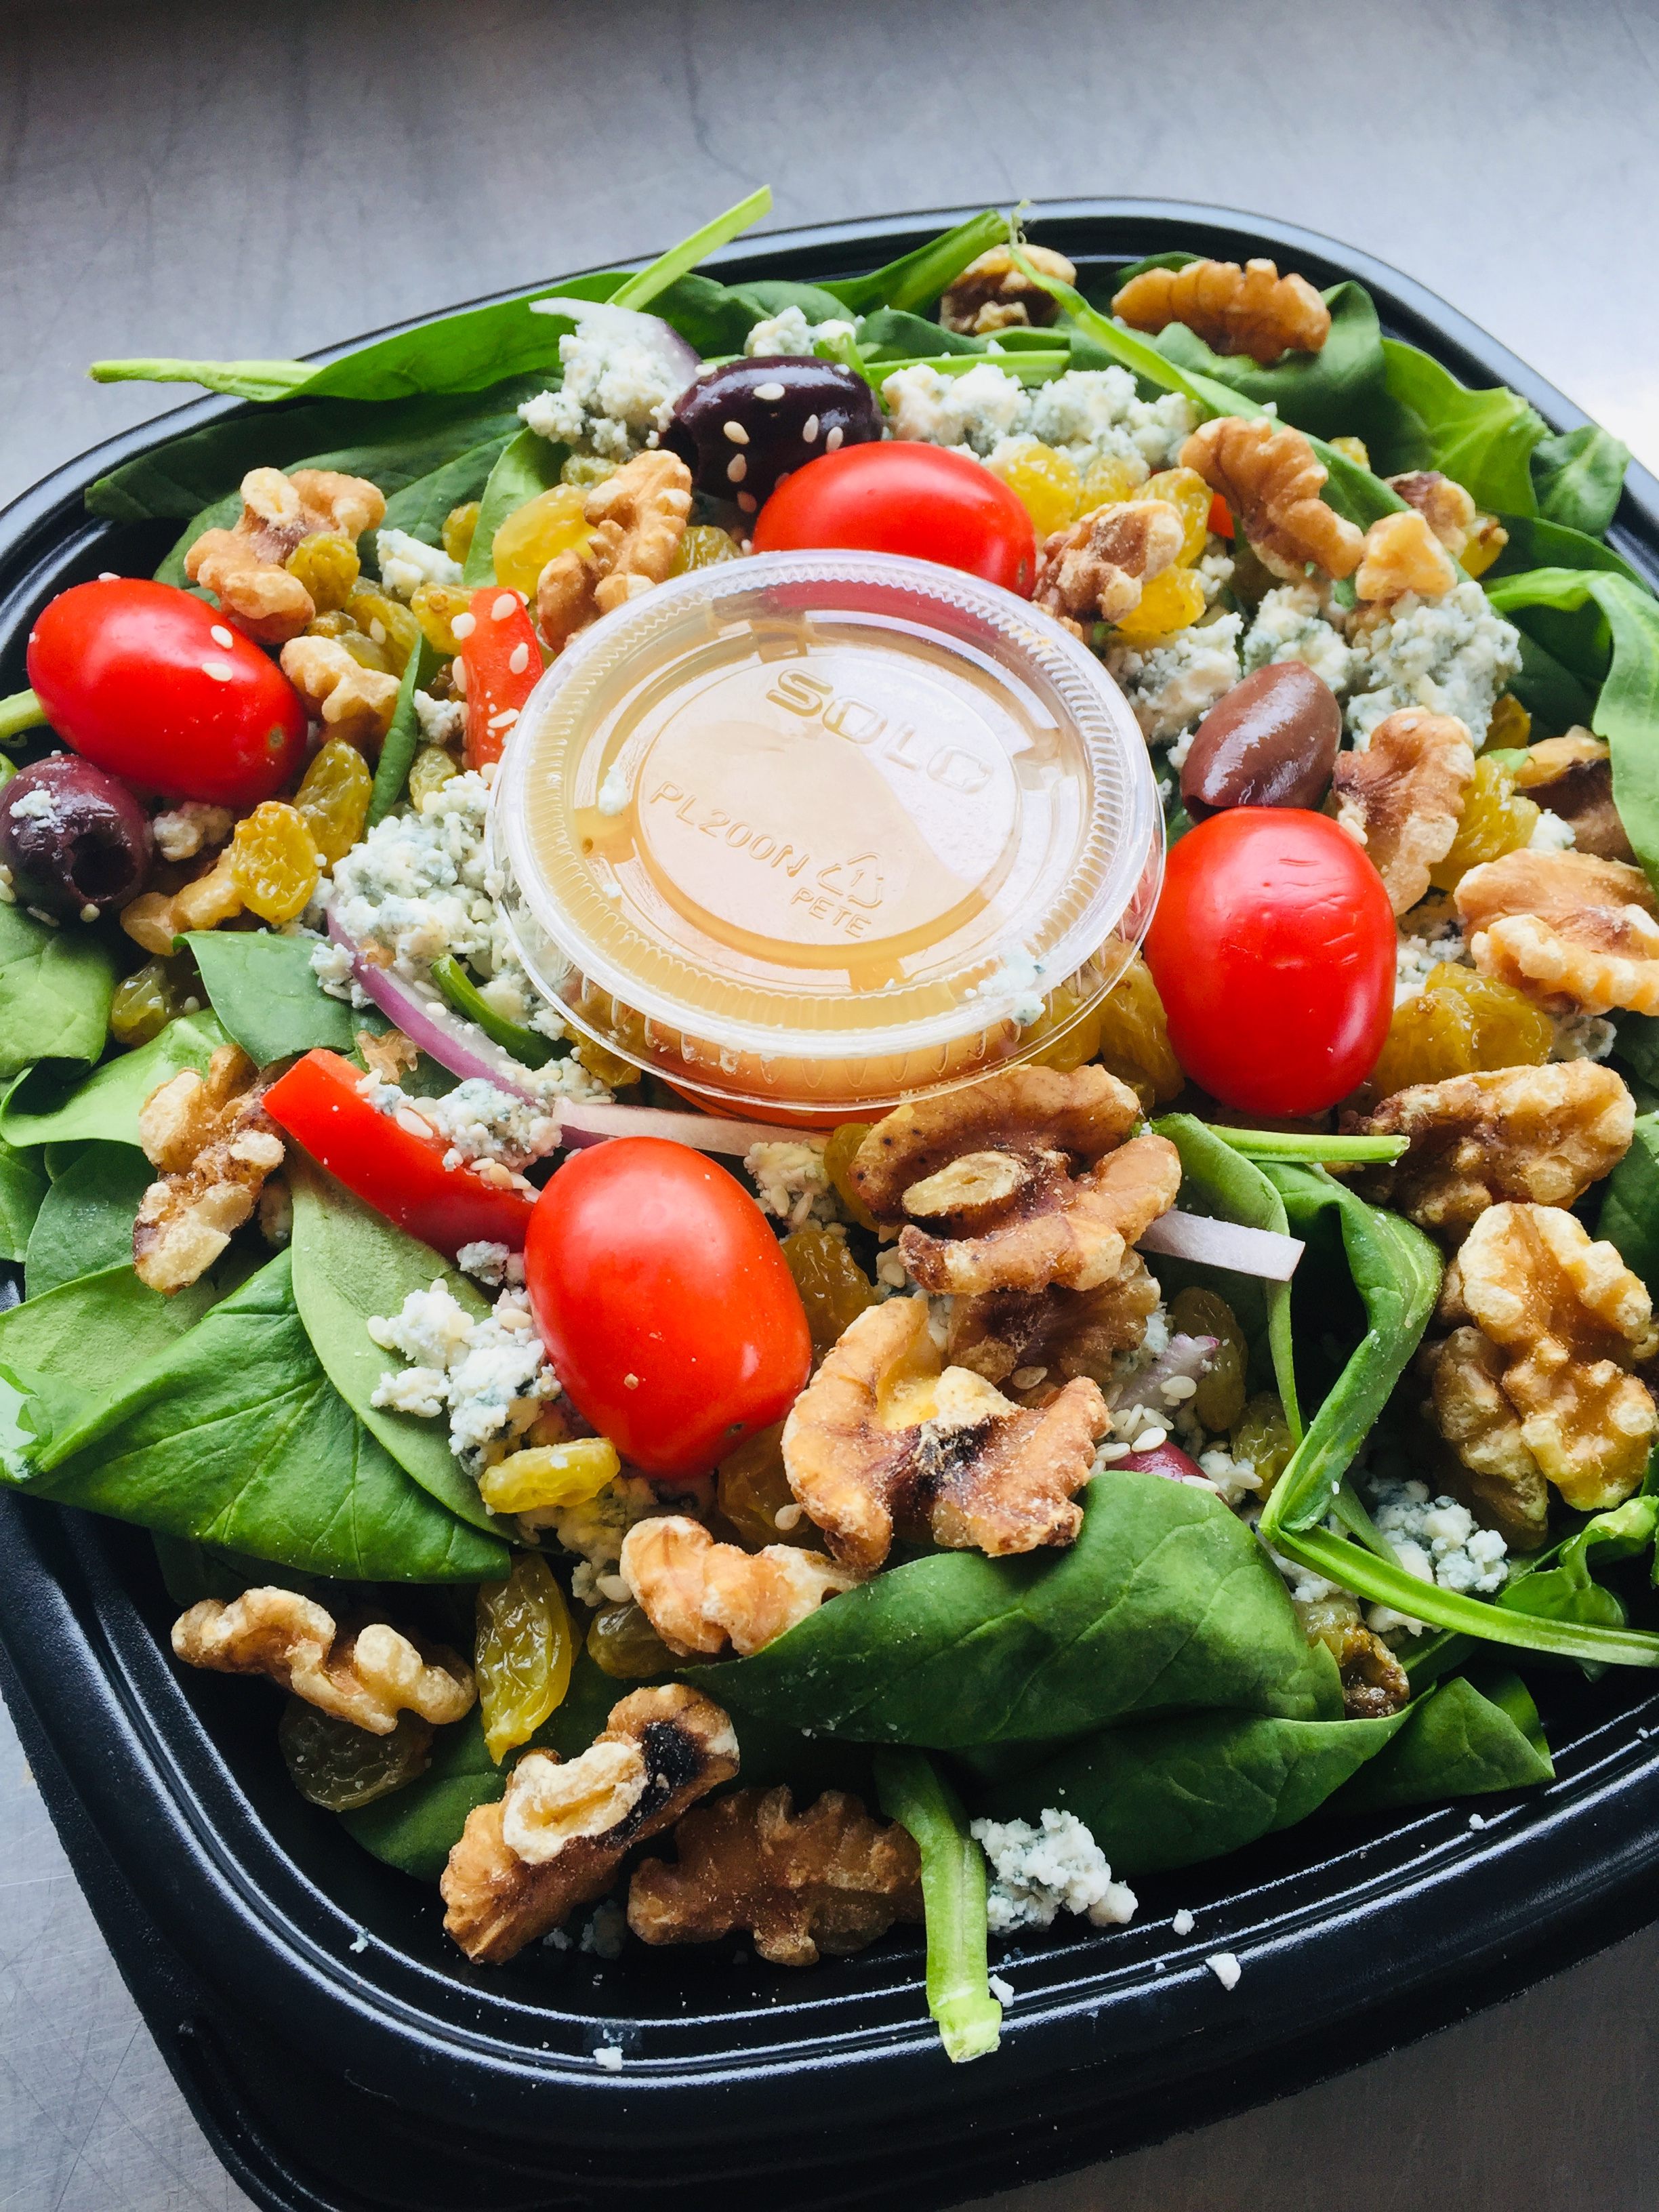 Spinach & Bleu Cheese Salad: (Walnuts and Pepper Jelly Vinaigrette)